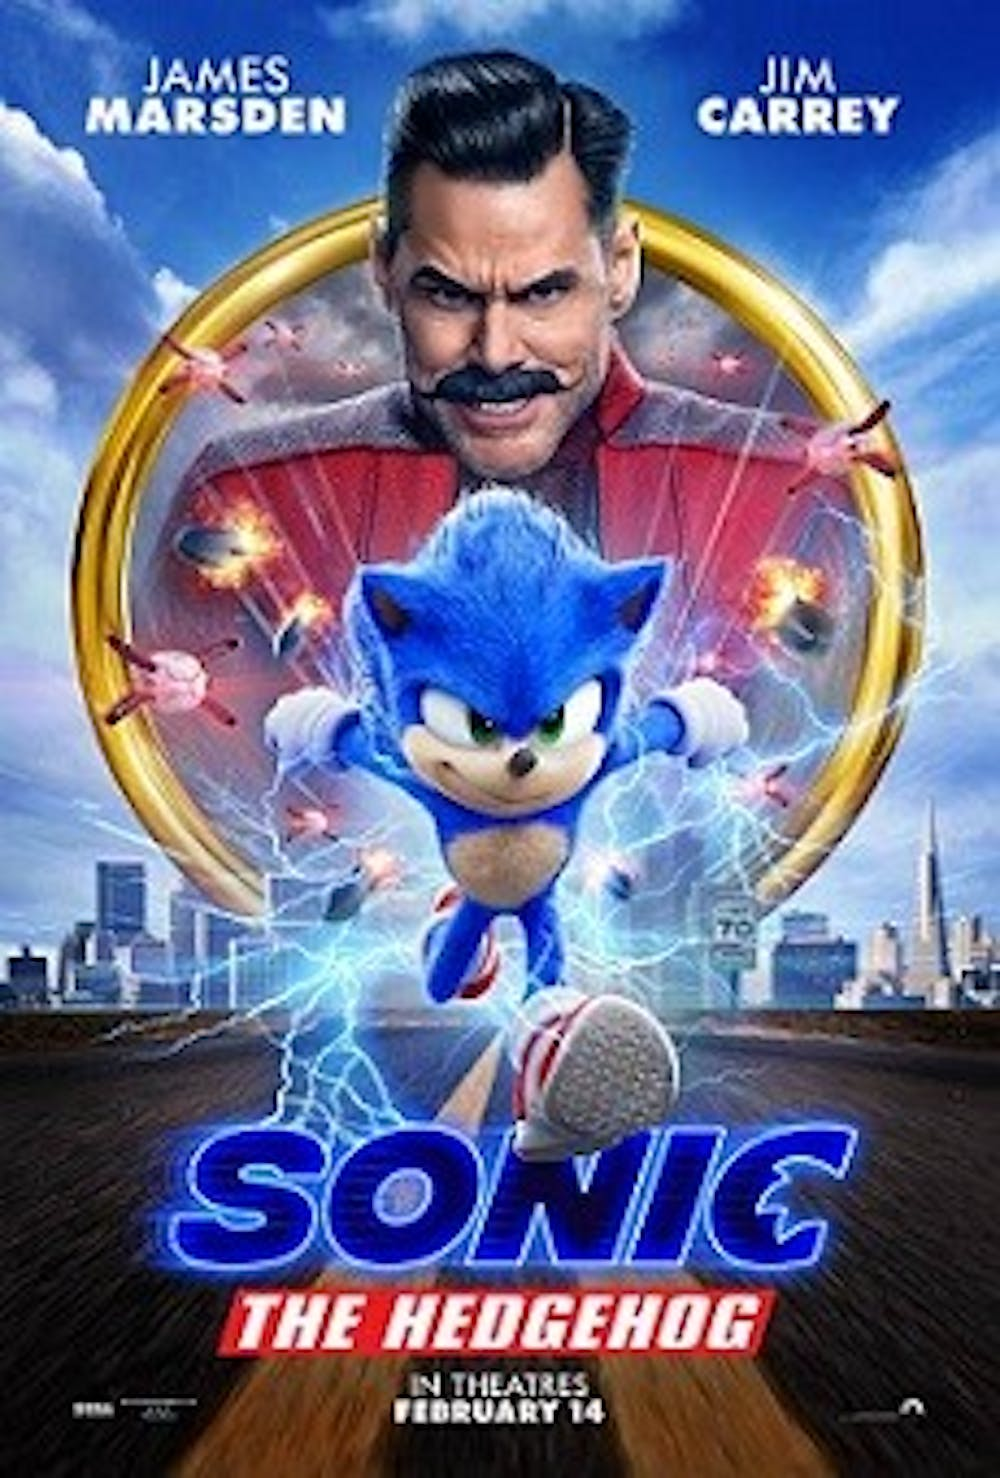 Sonic The Hedgehog Defies Low Expectations And Doubts The Spectrum